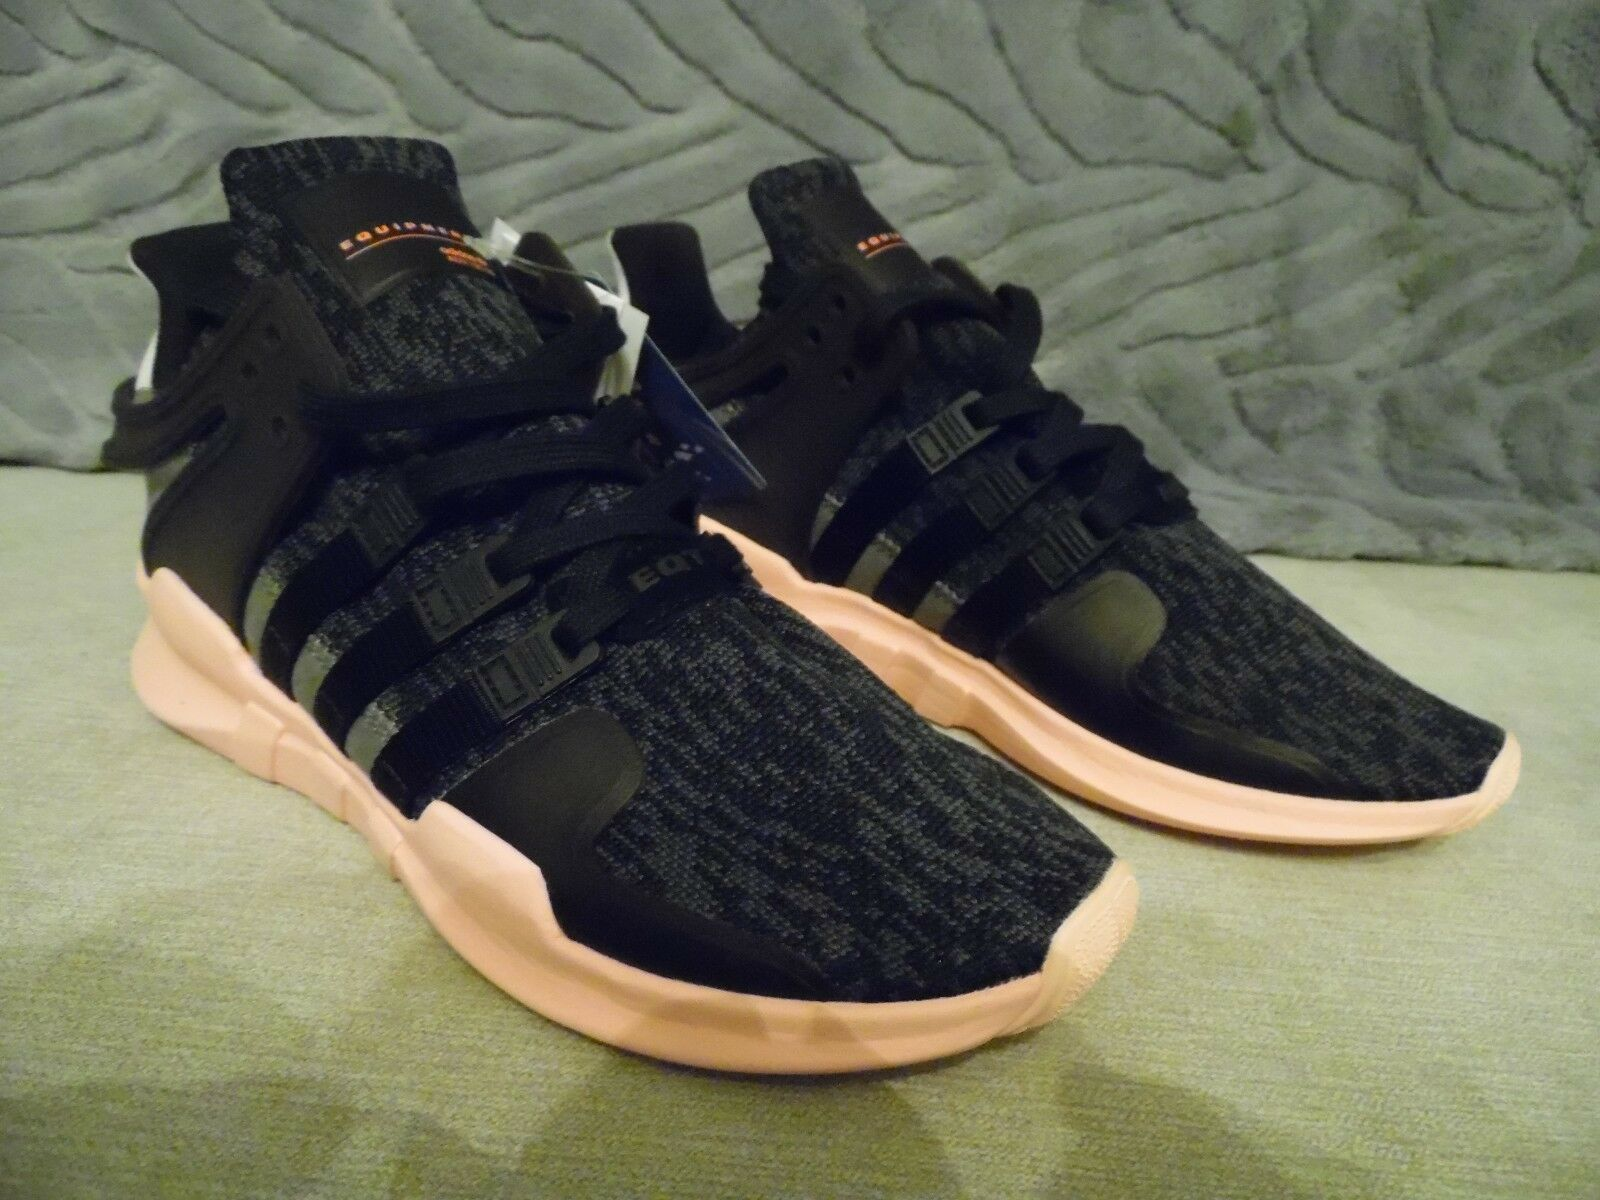 Zapatos promocionales para hombres y mujeres Adidas EQT Support ADV W Womens Mens NMD Black Pink Running Shoes BNIB Trainers